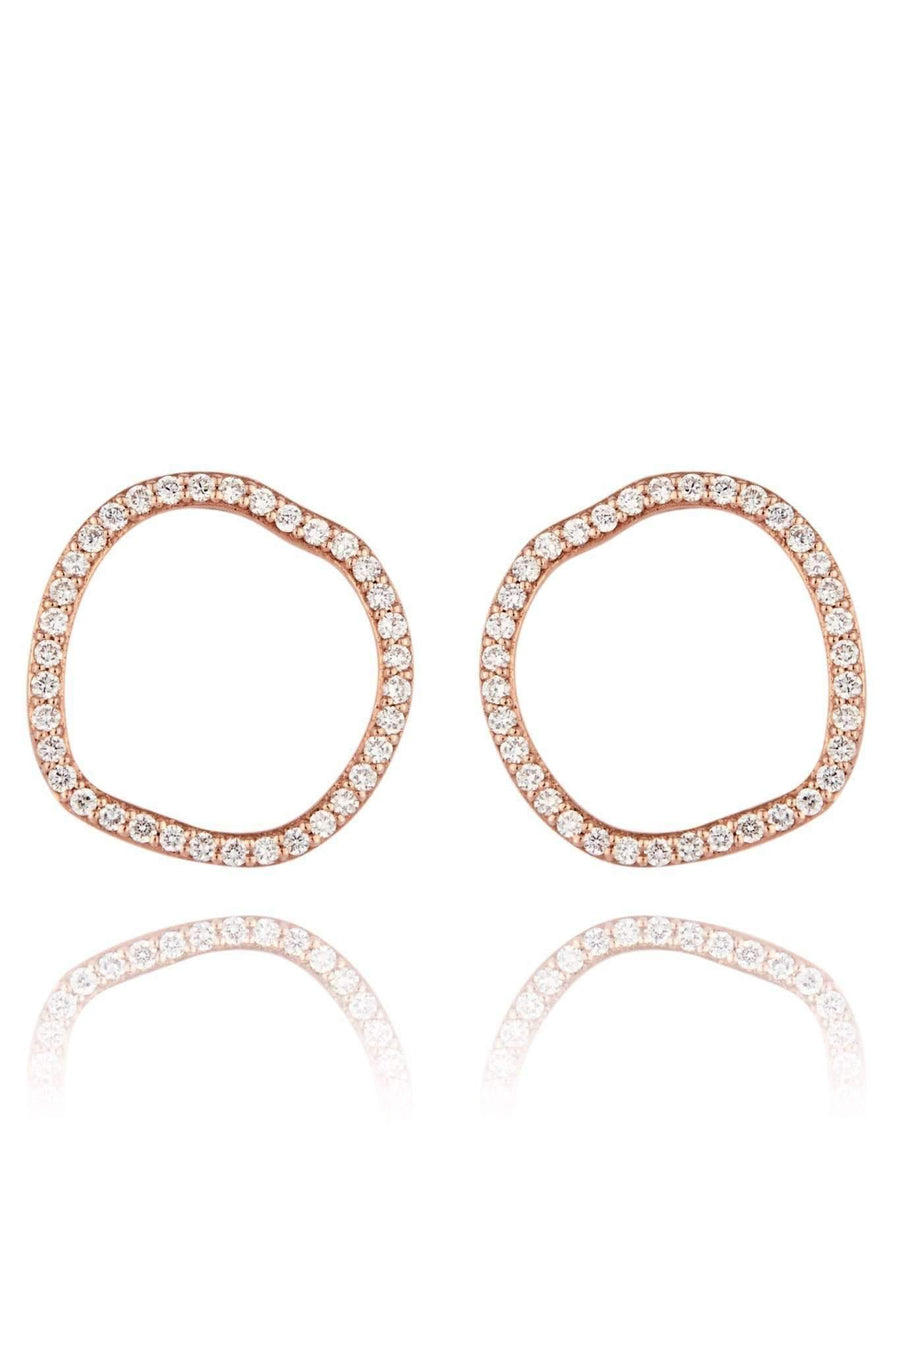 Halo Diamond Stud Earrings Earrings Lark and Berry